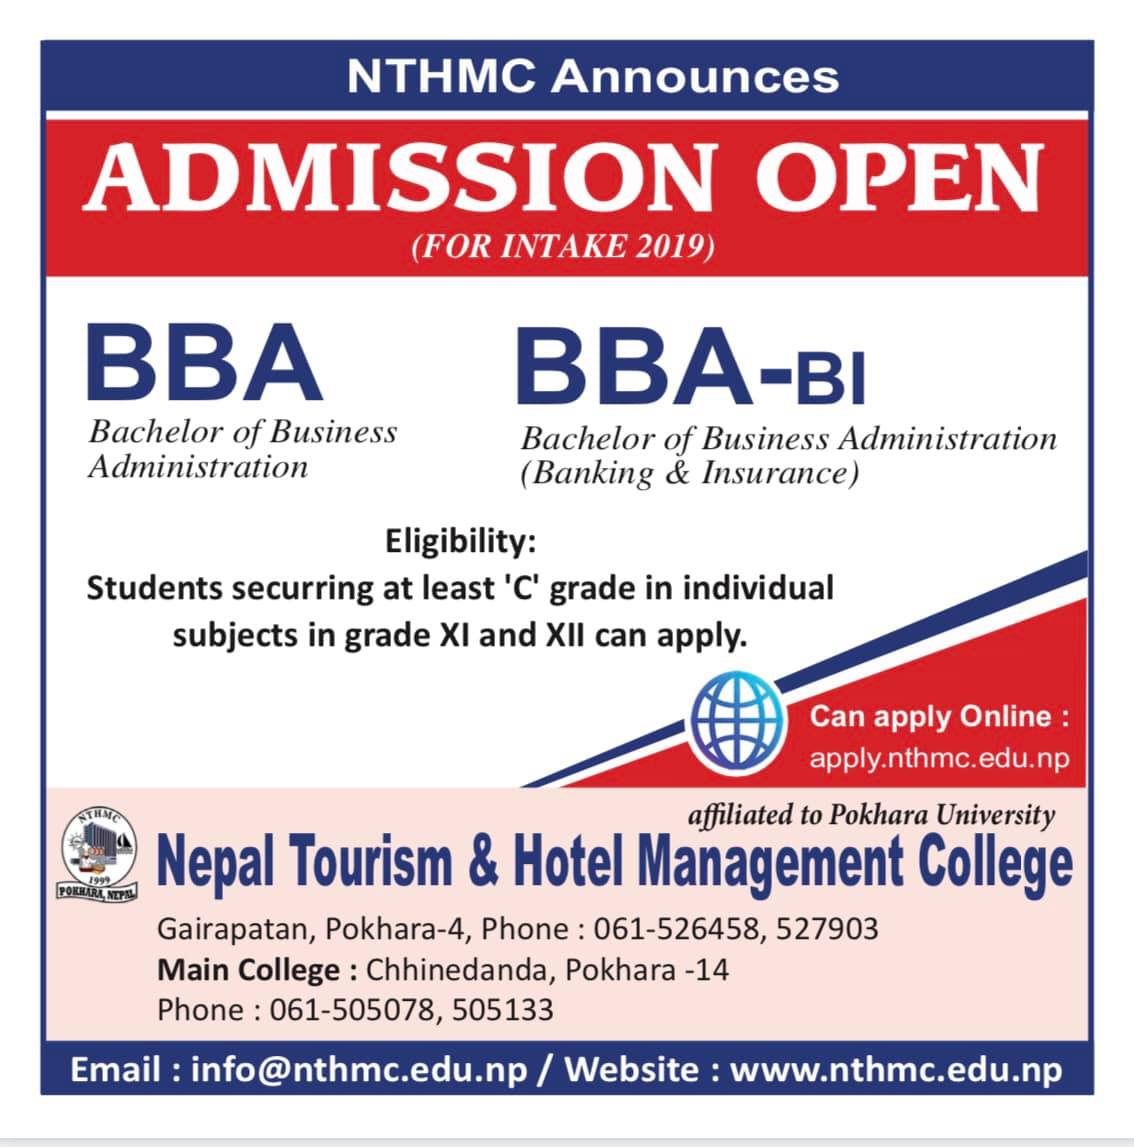 Admission open for BBA, BBA-BI 2019